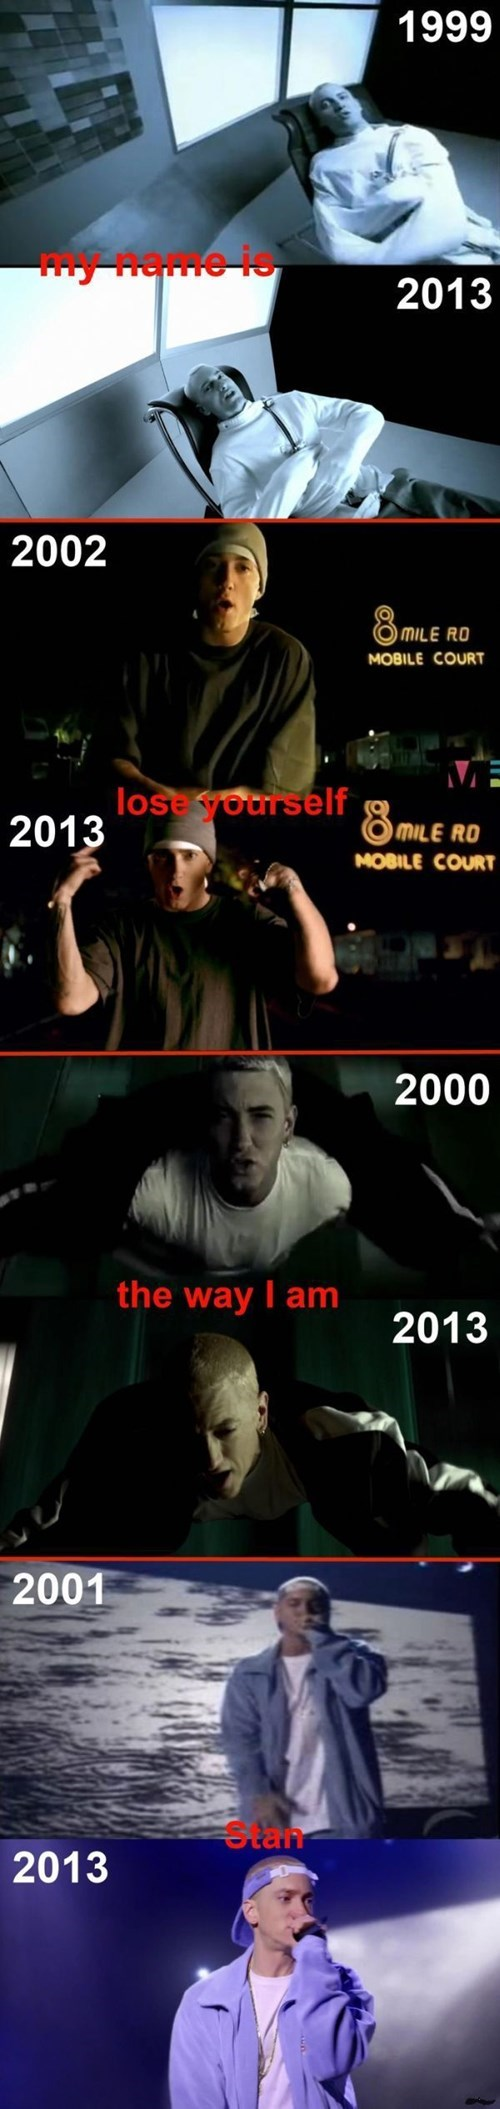 eminem,time travel,music videos